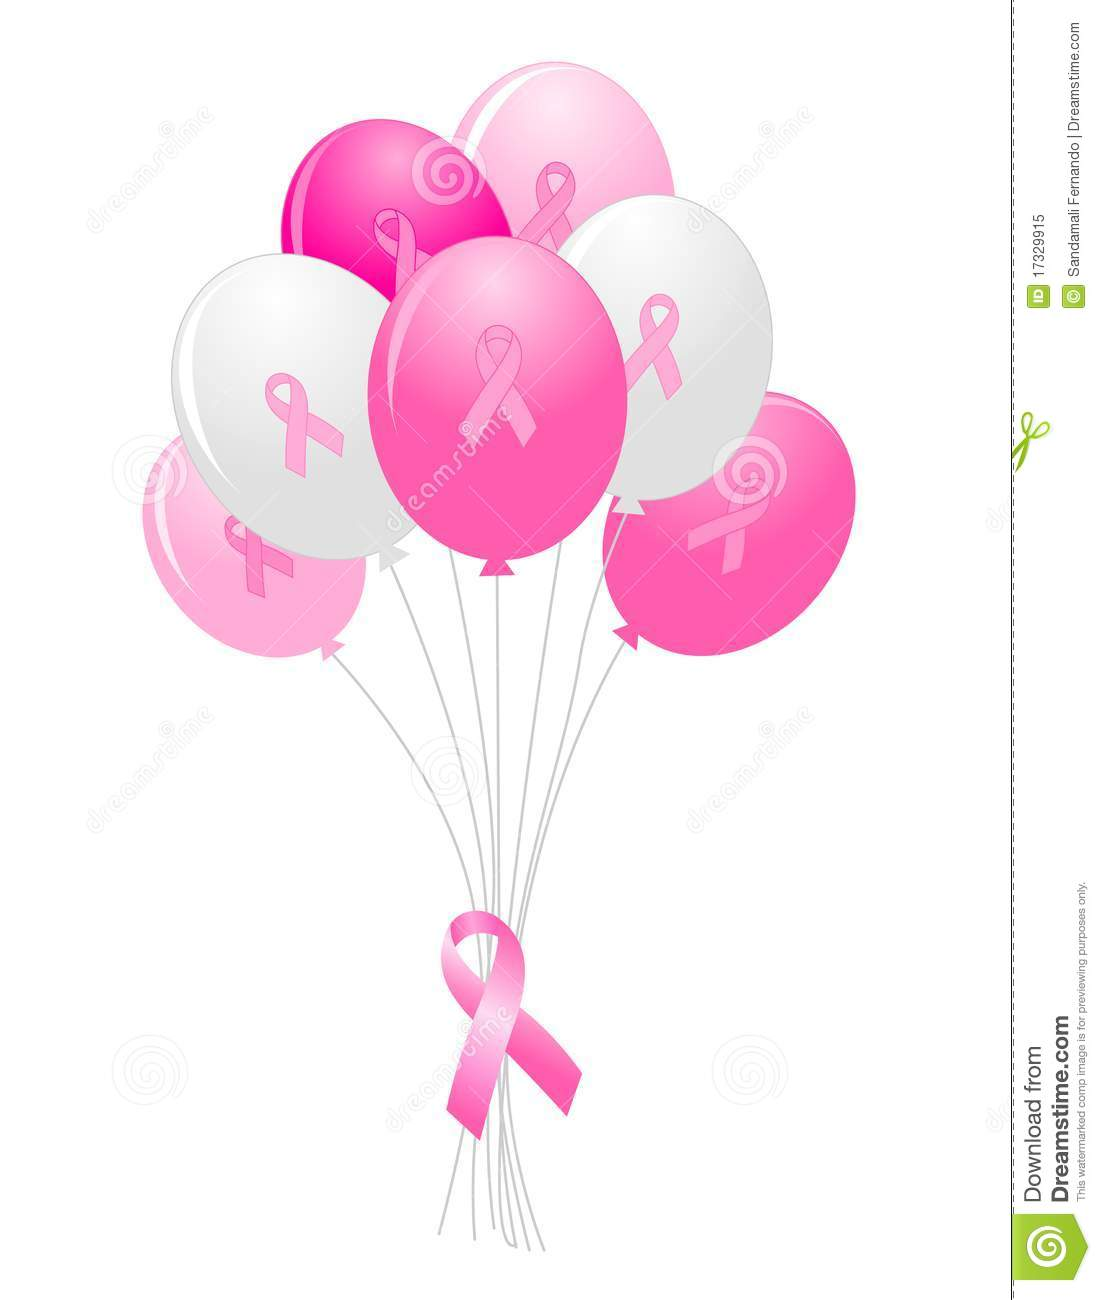 Pink Colored Balloons With Breast Cancer Awareness Ribbon Bow Clipart